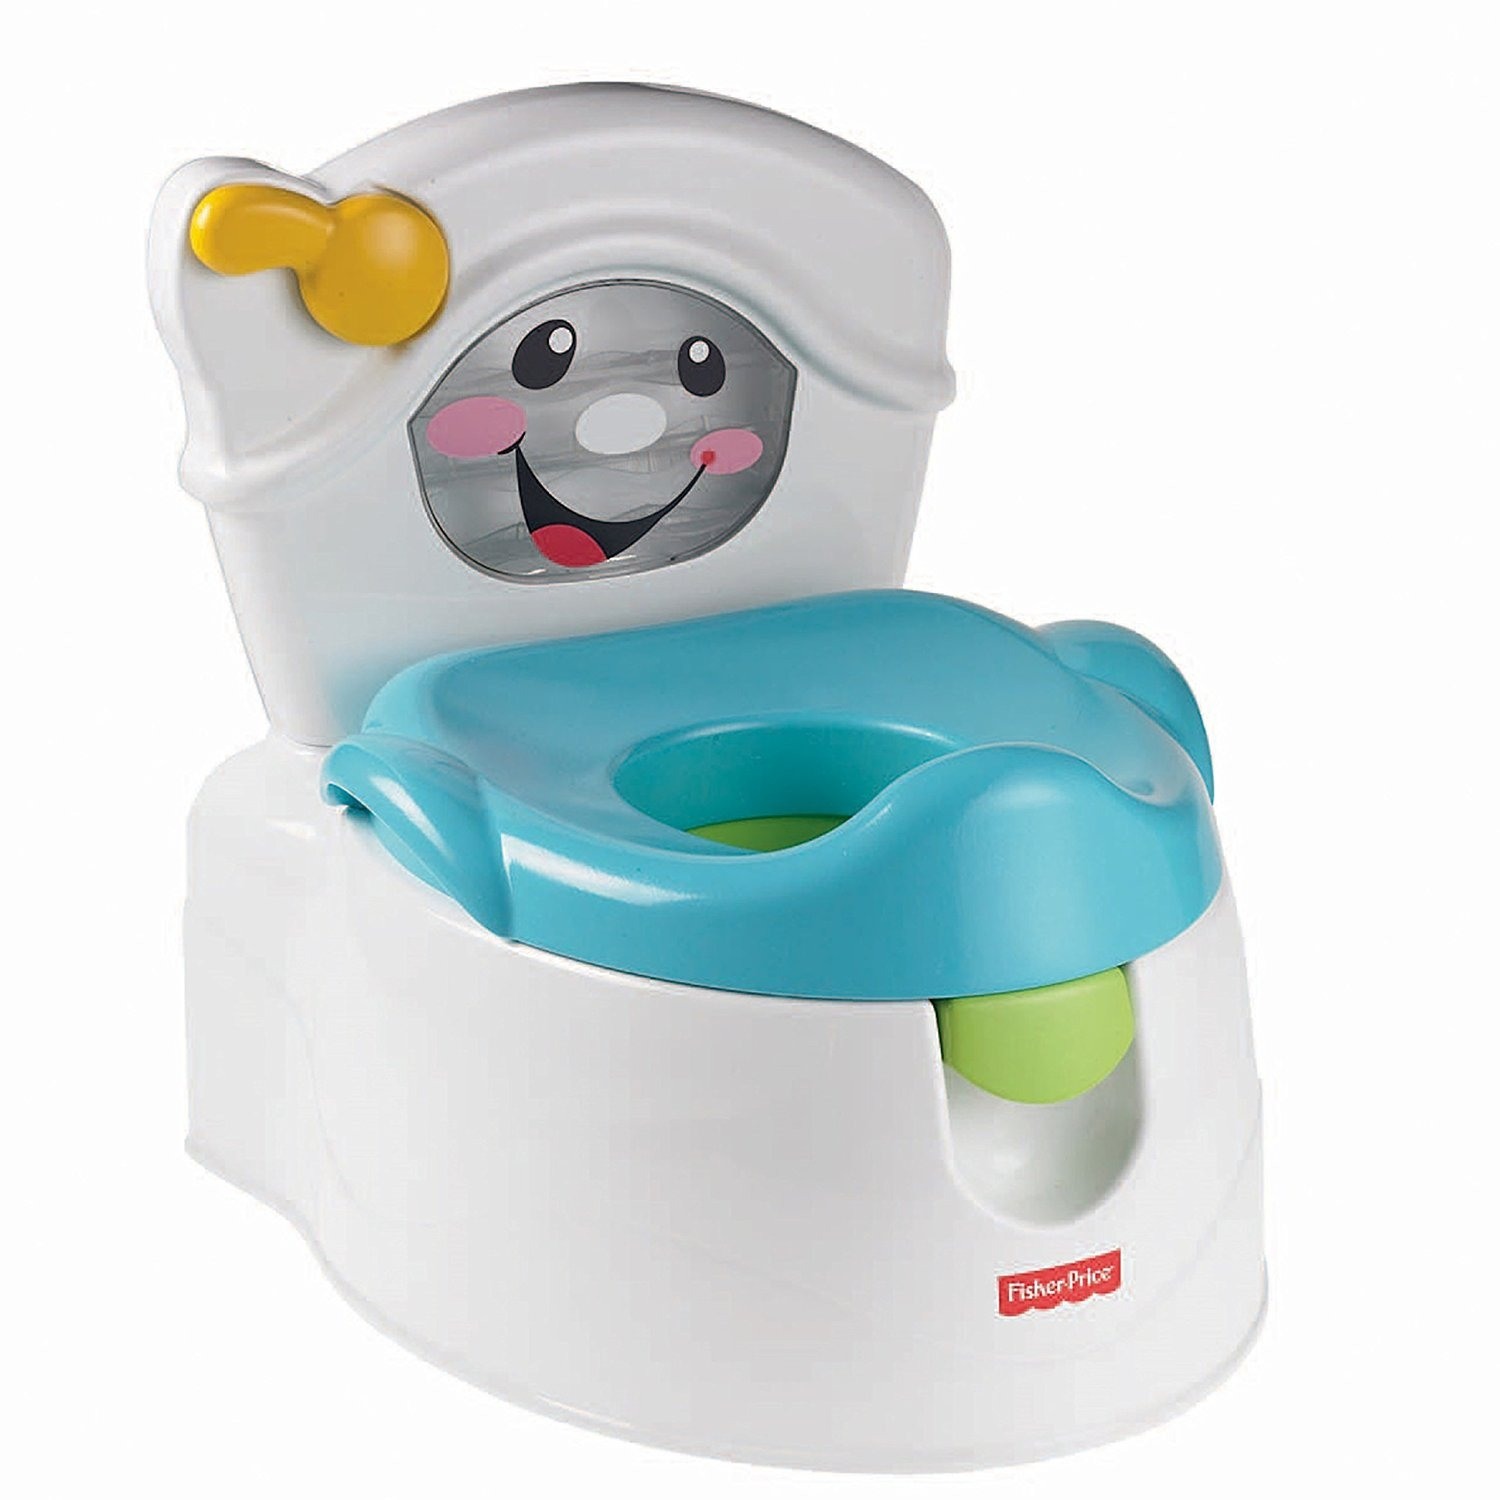 Fisher Price Learn-to-Flush Potty